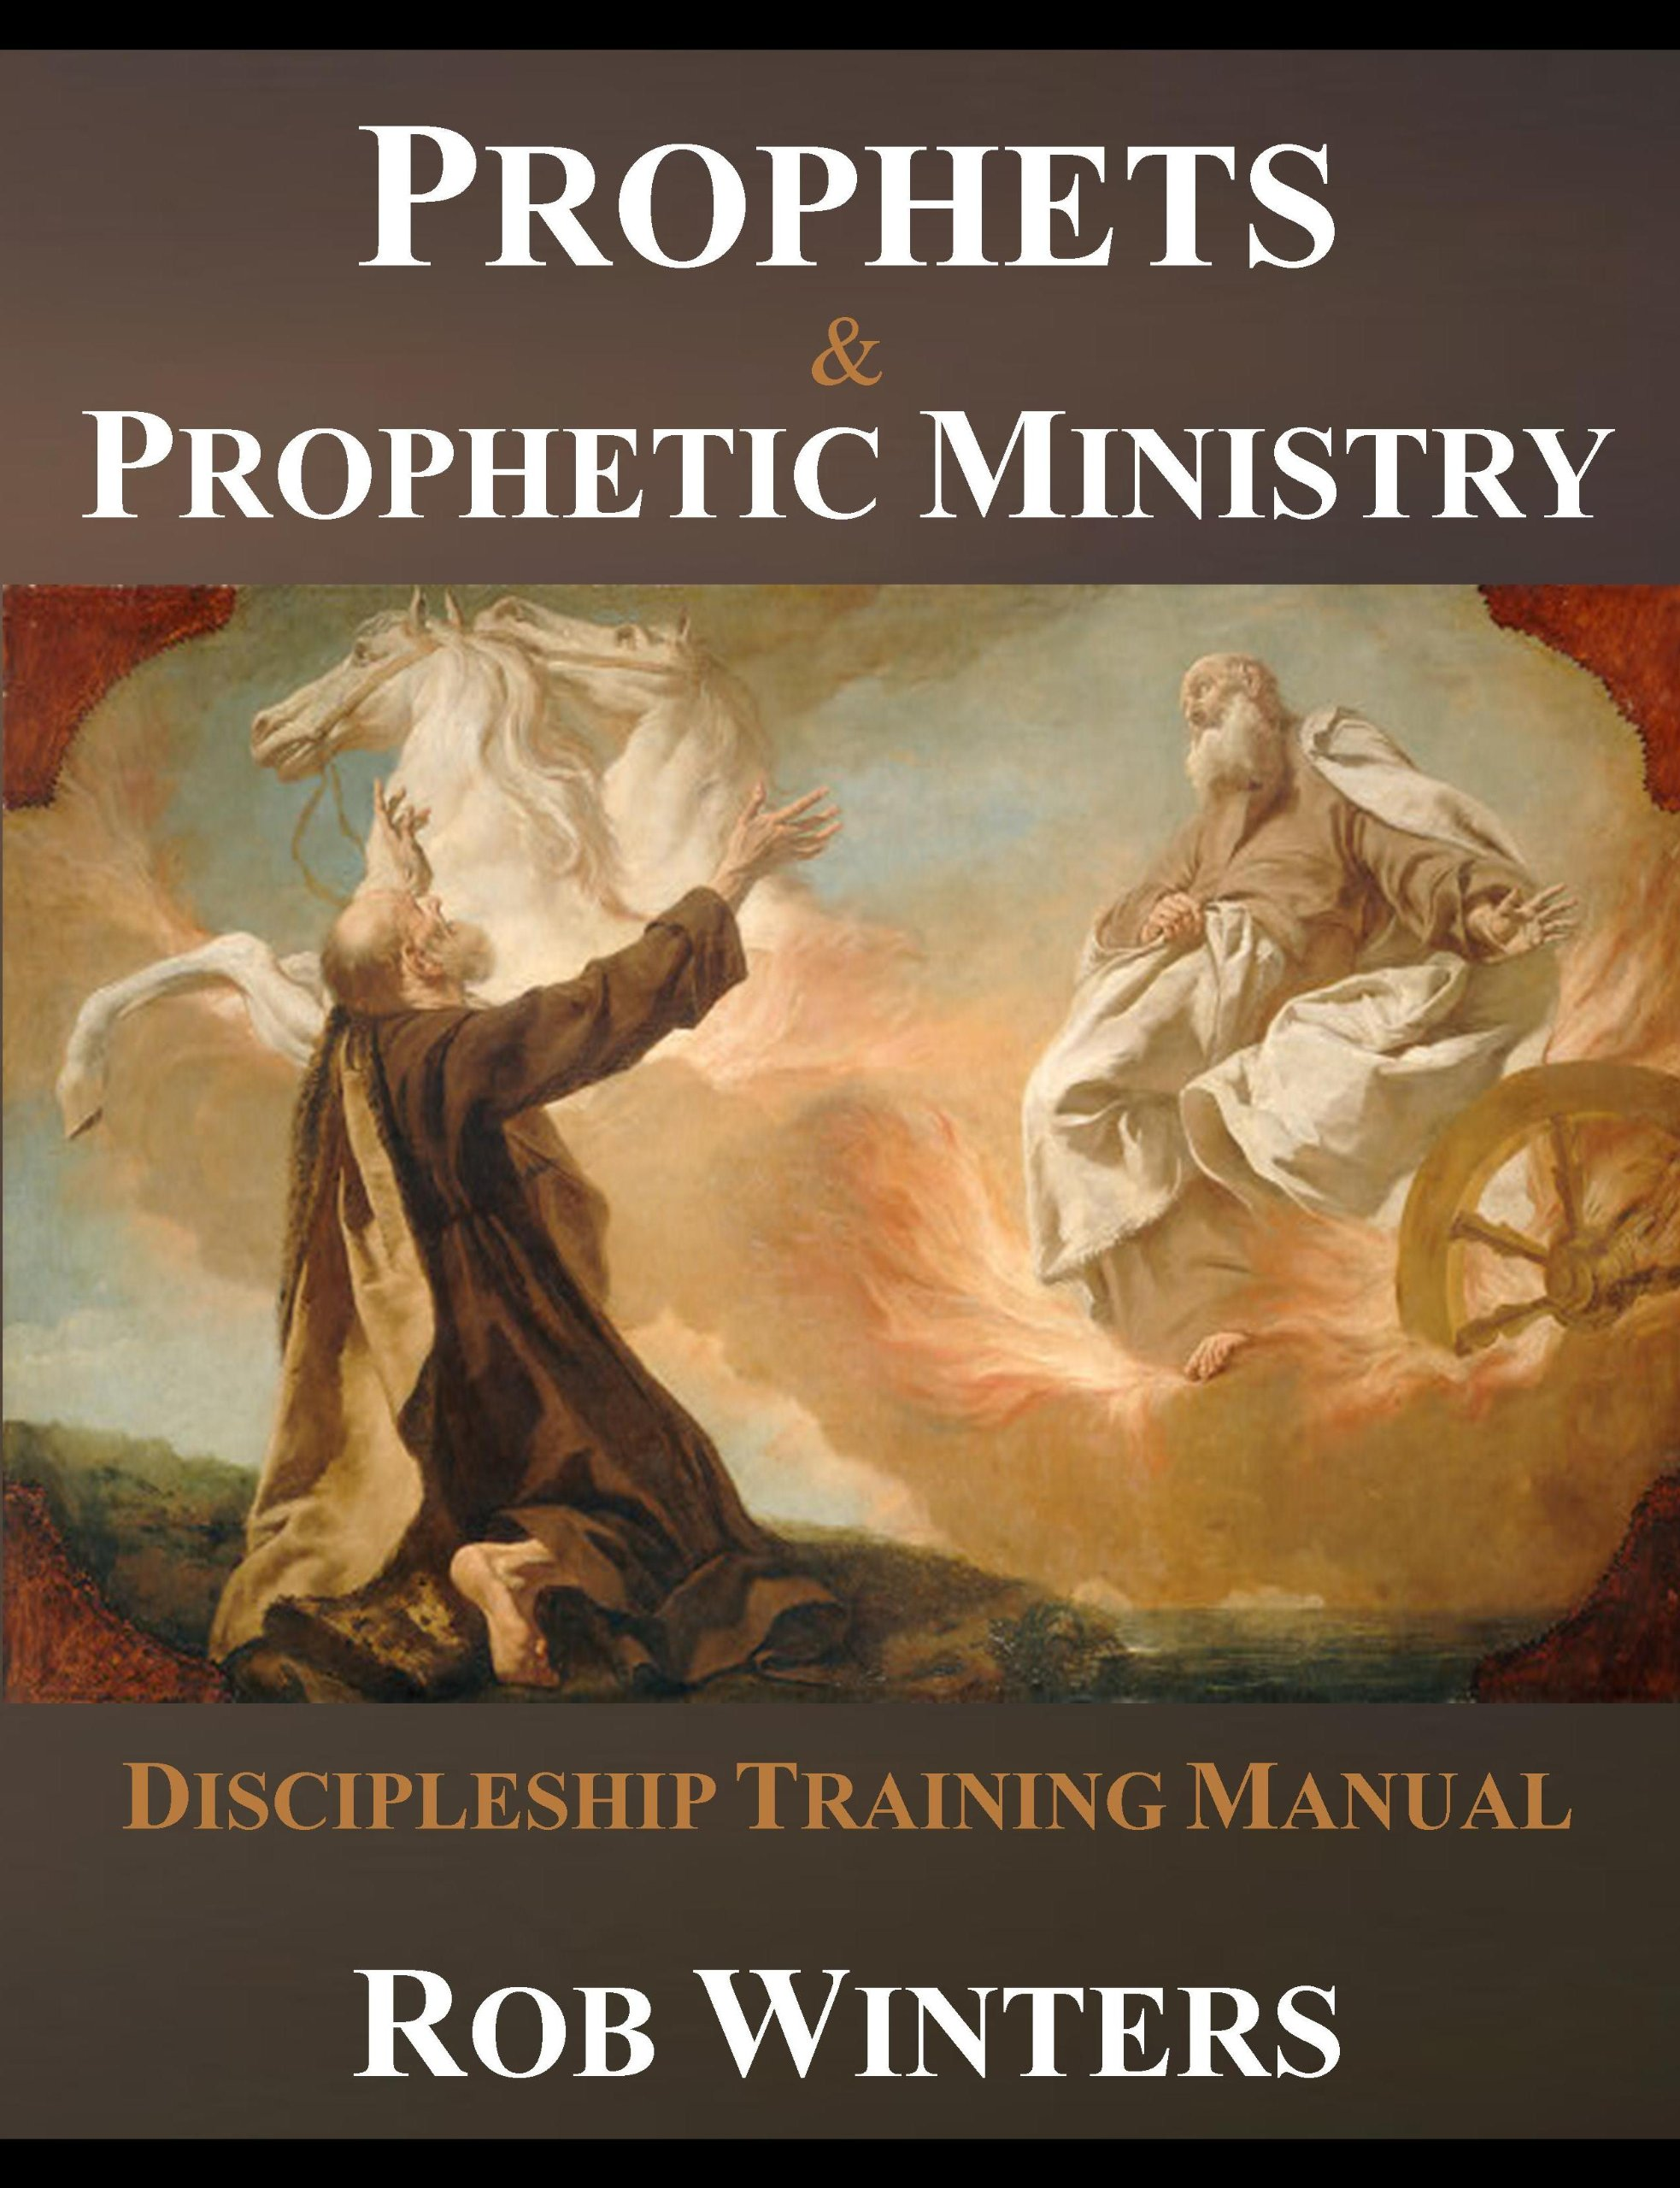 Prophets & Prophetic Ministry Discipleship Training Manual: Robert J.  Winters: 9780967590738: Amazon.com: Books